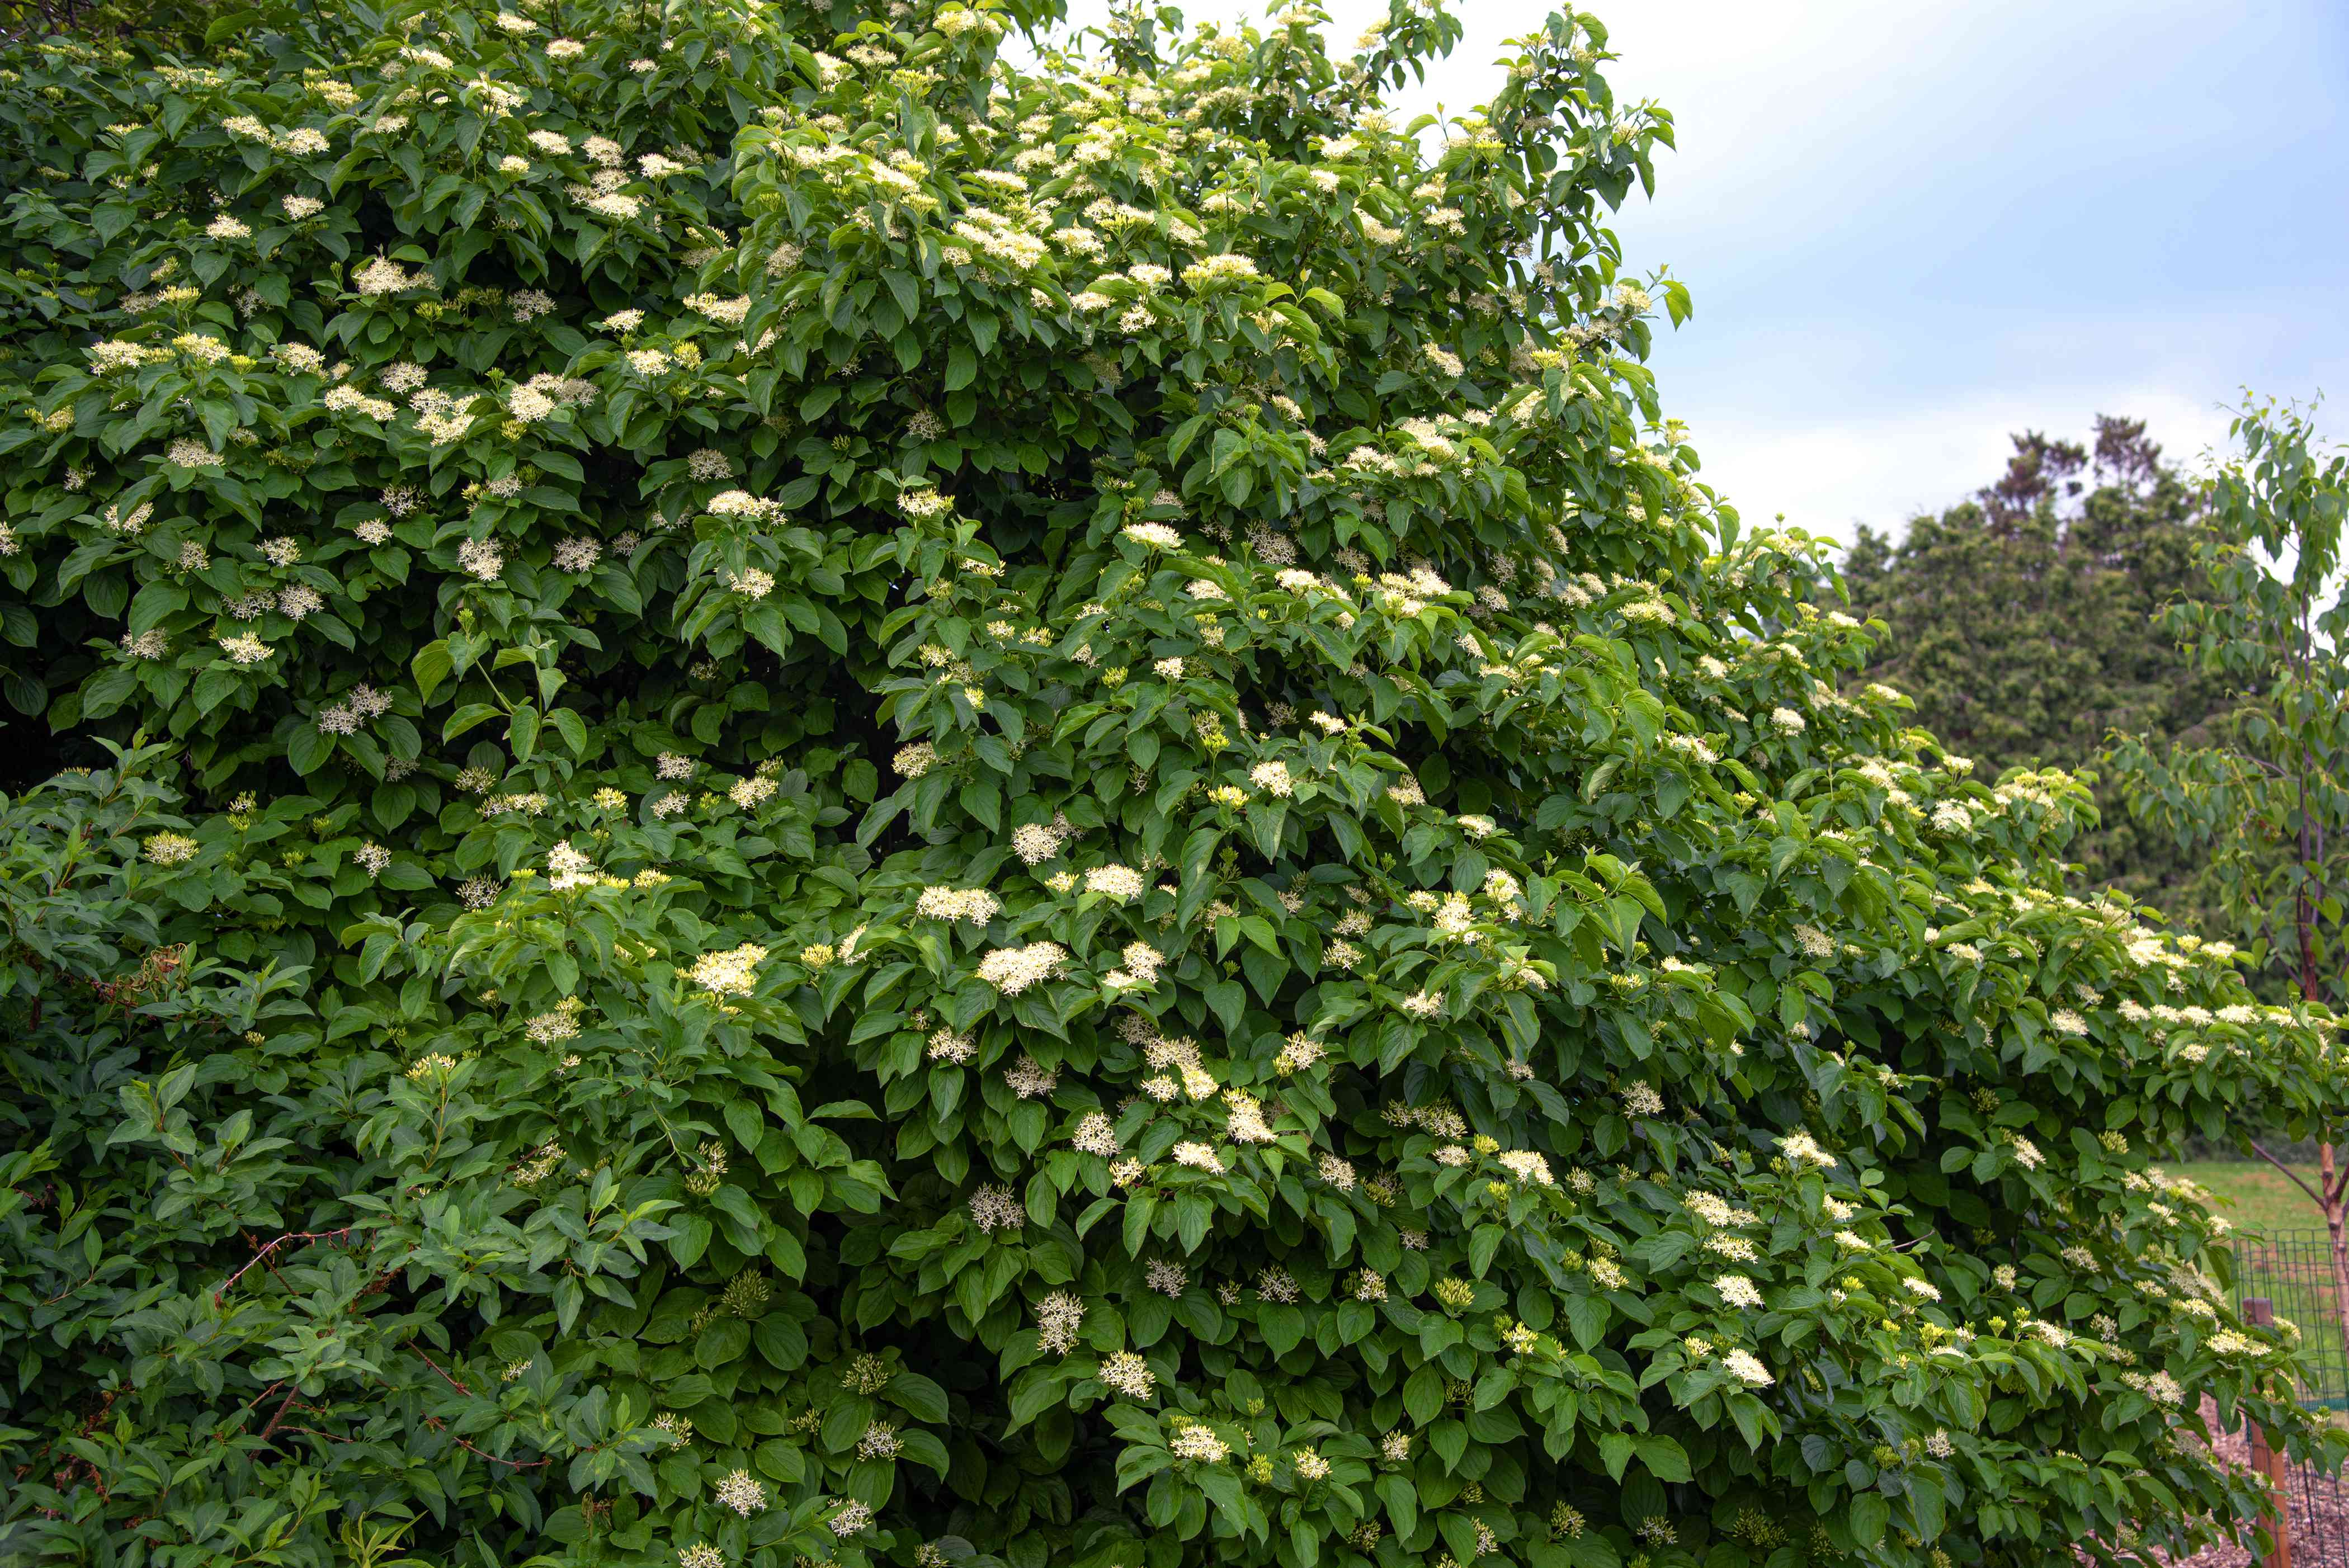 Silky dogwood shrub with dense branches of large leaves and white flower clusters